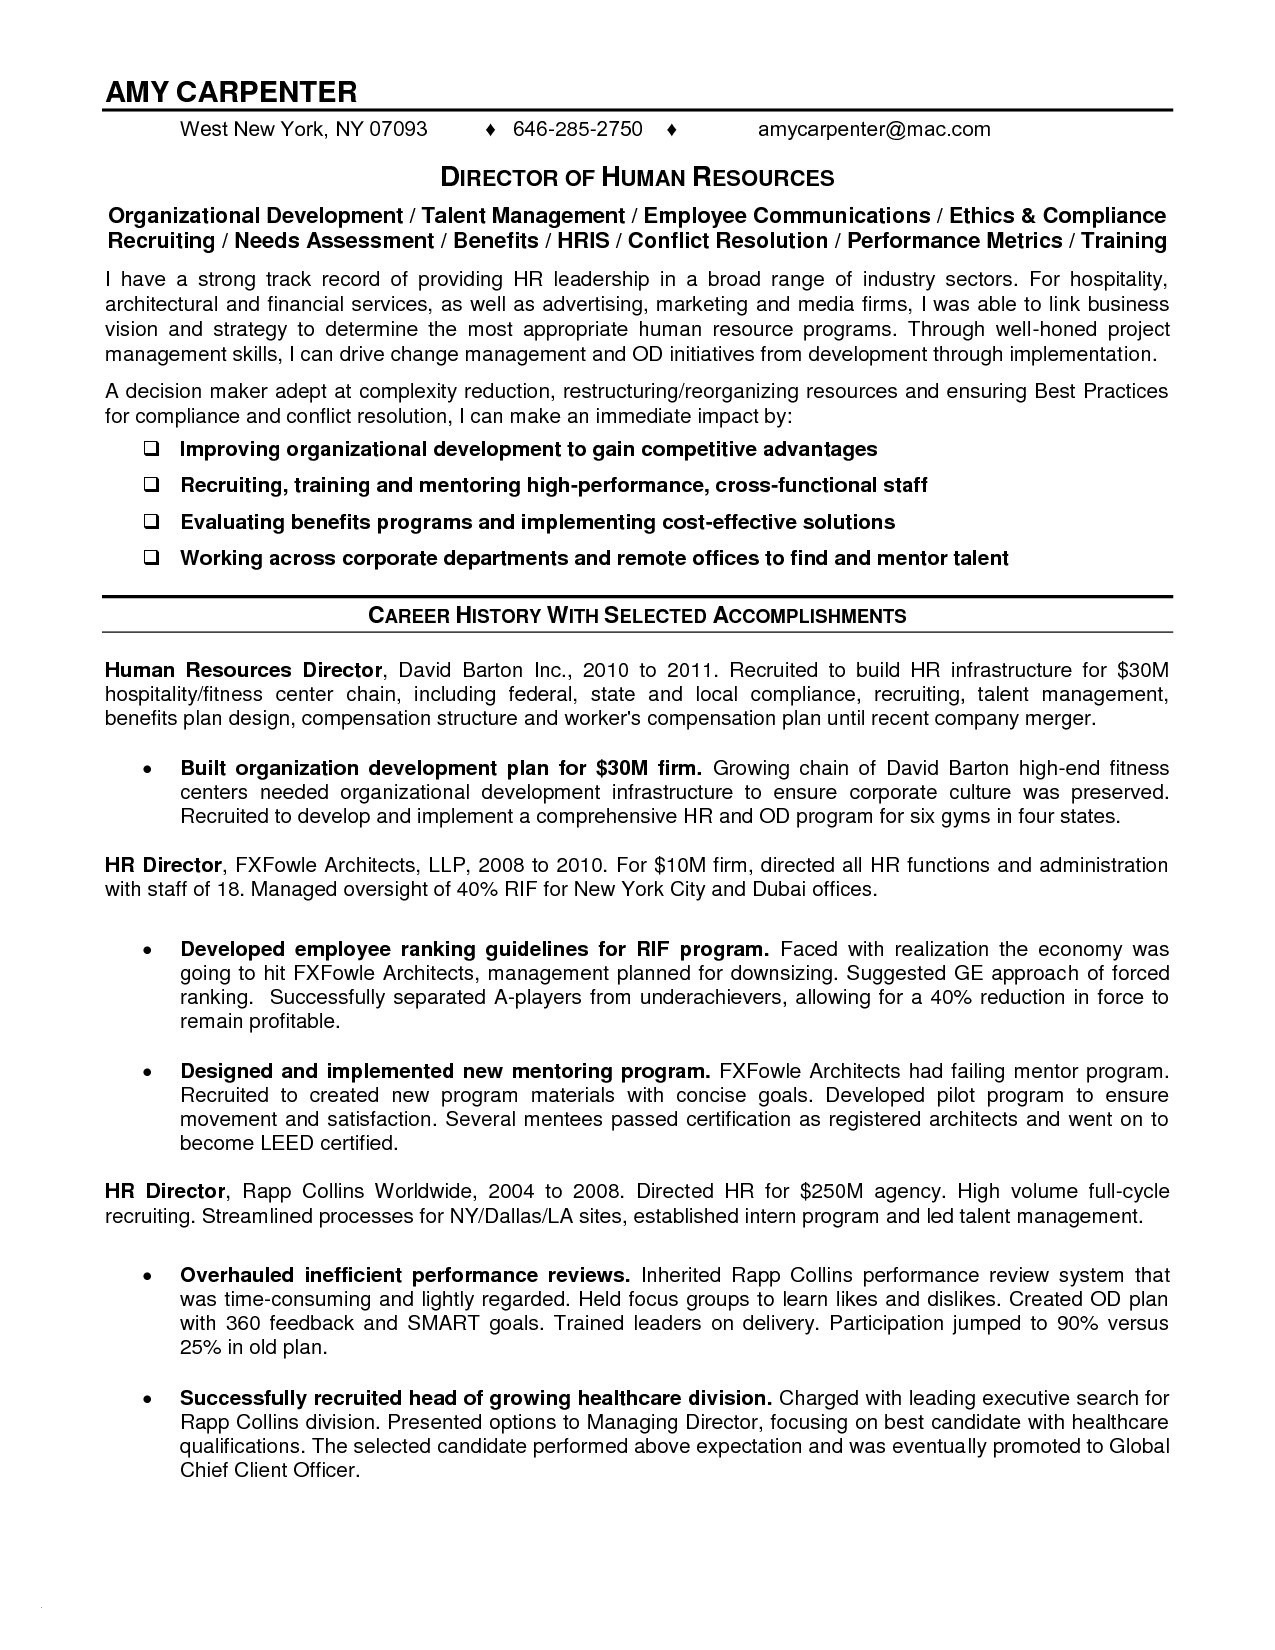 delivery driver resume examples example-delivery driver skills for resume awesome delivery driver skills for resume unique unique truck driver resume of delivery driver skills for resume 8-g